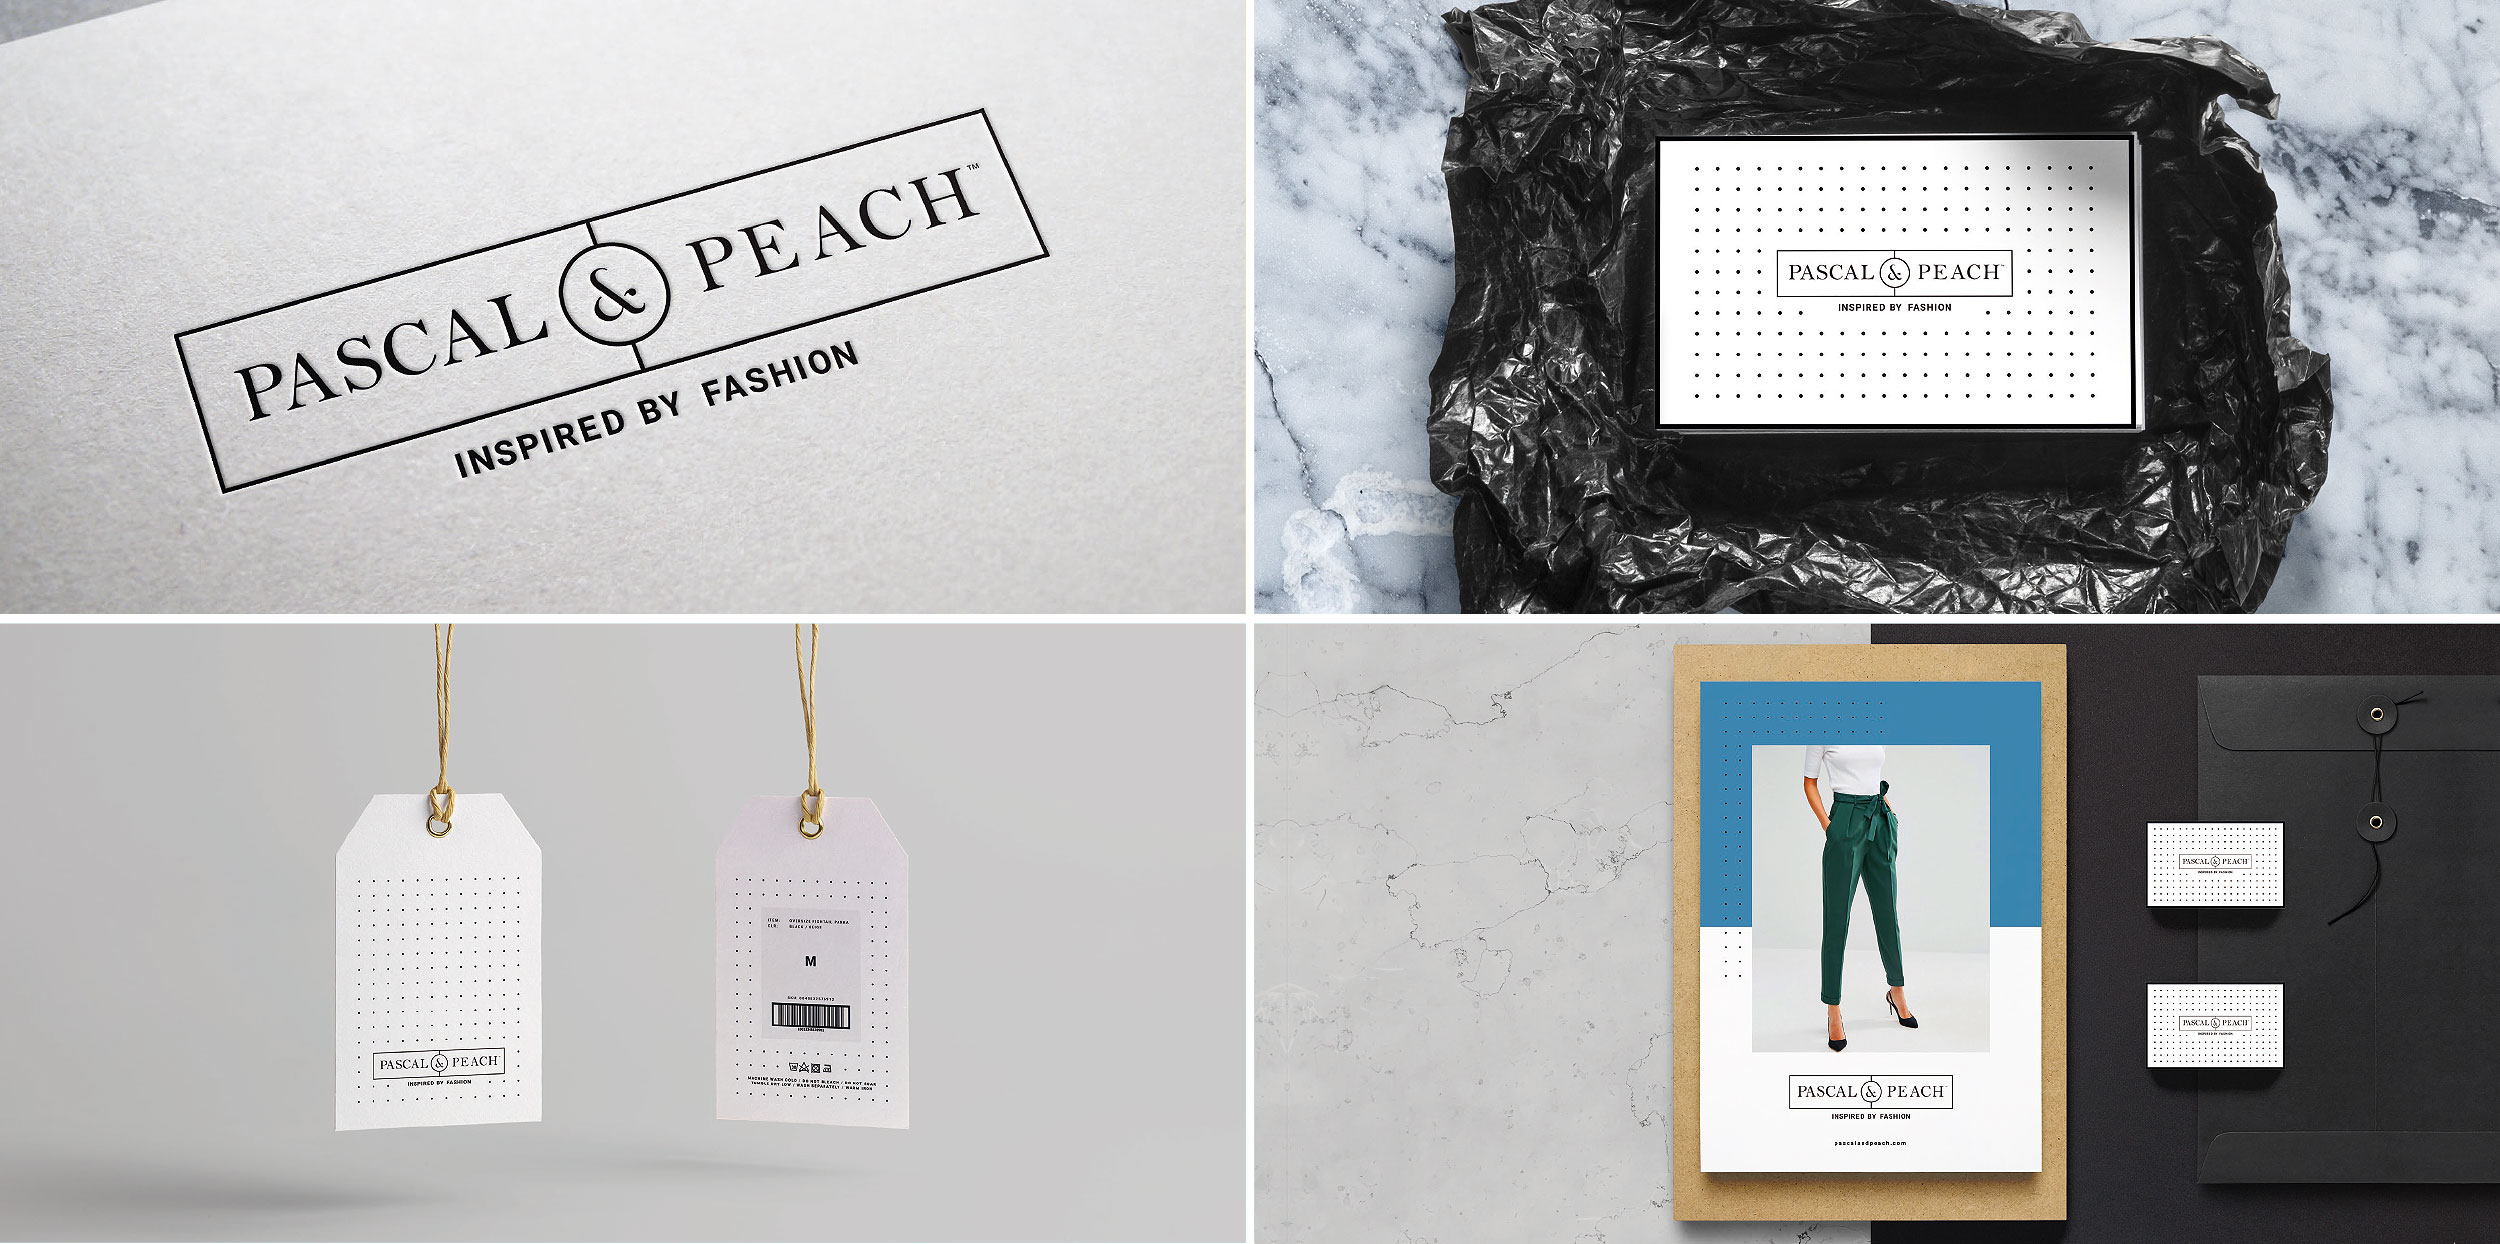 Pascal-and-Peach-Fashion-Branding-Parramatta-Design-Handle-Sydney_11.jpg